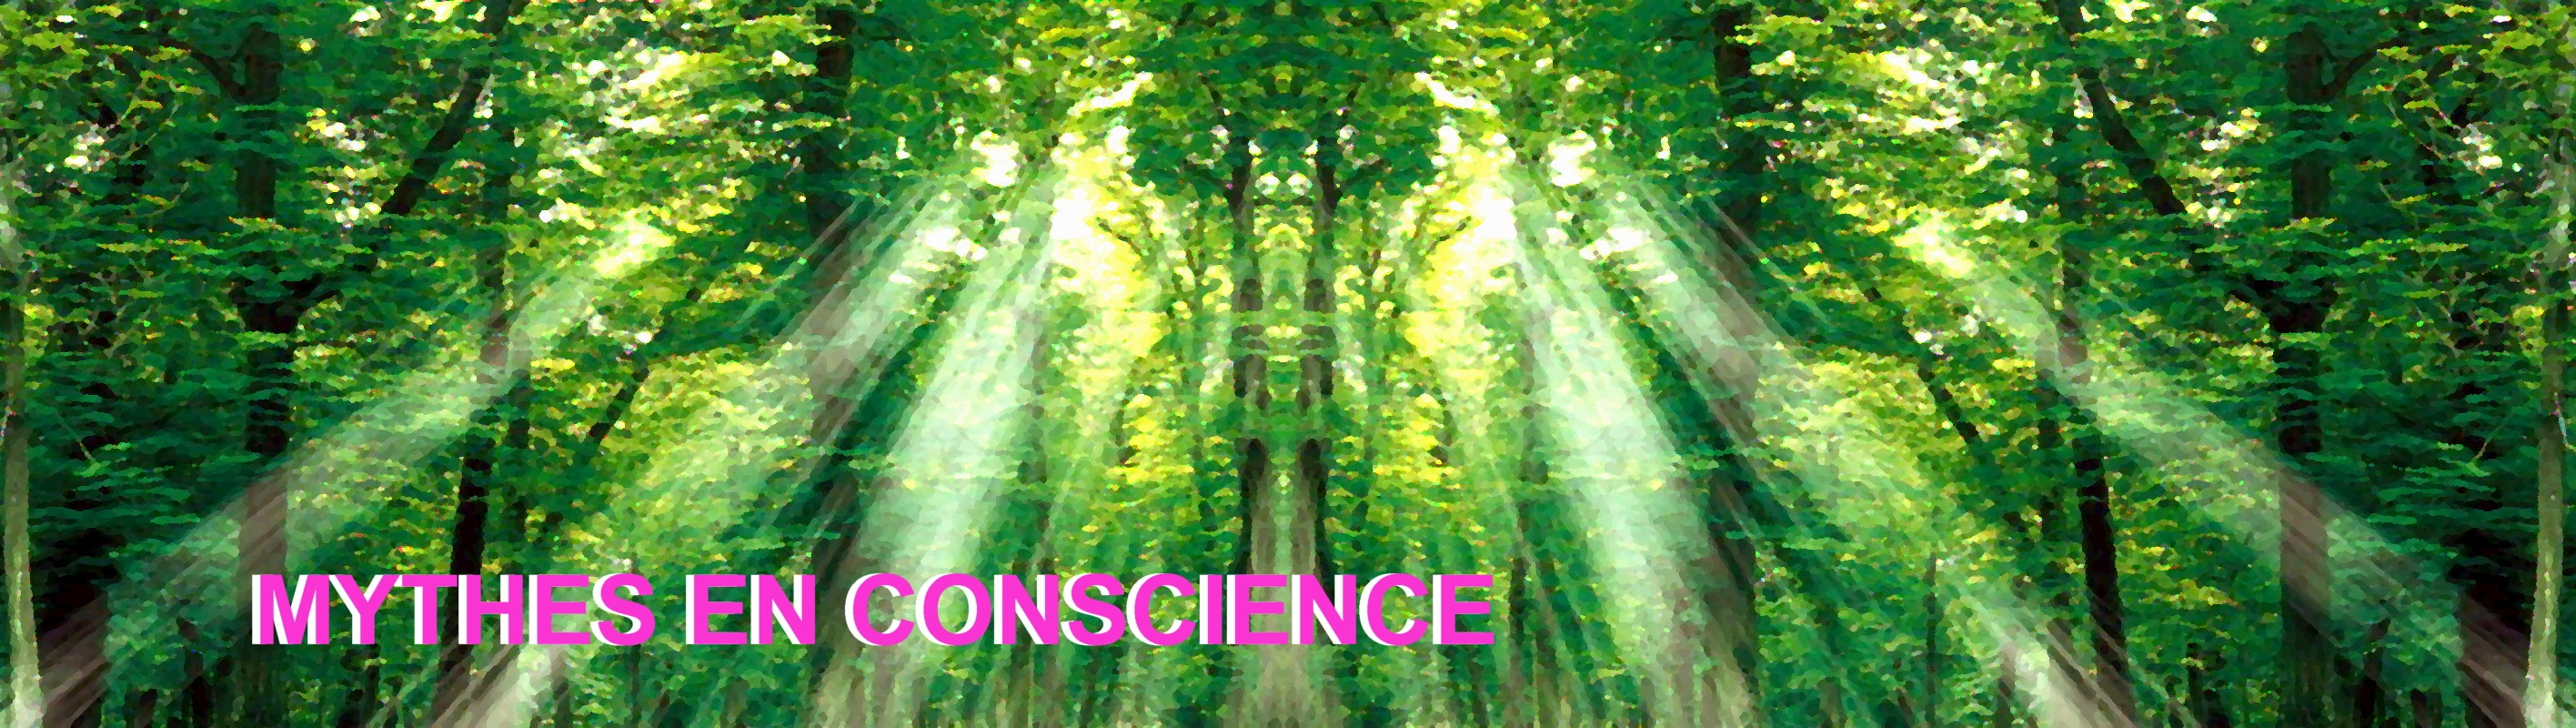 MYTHES EN CONSCIENCE